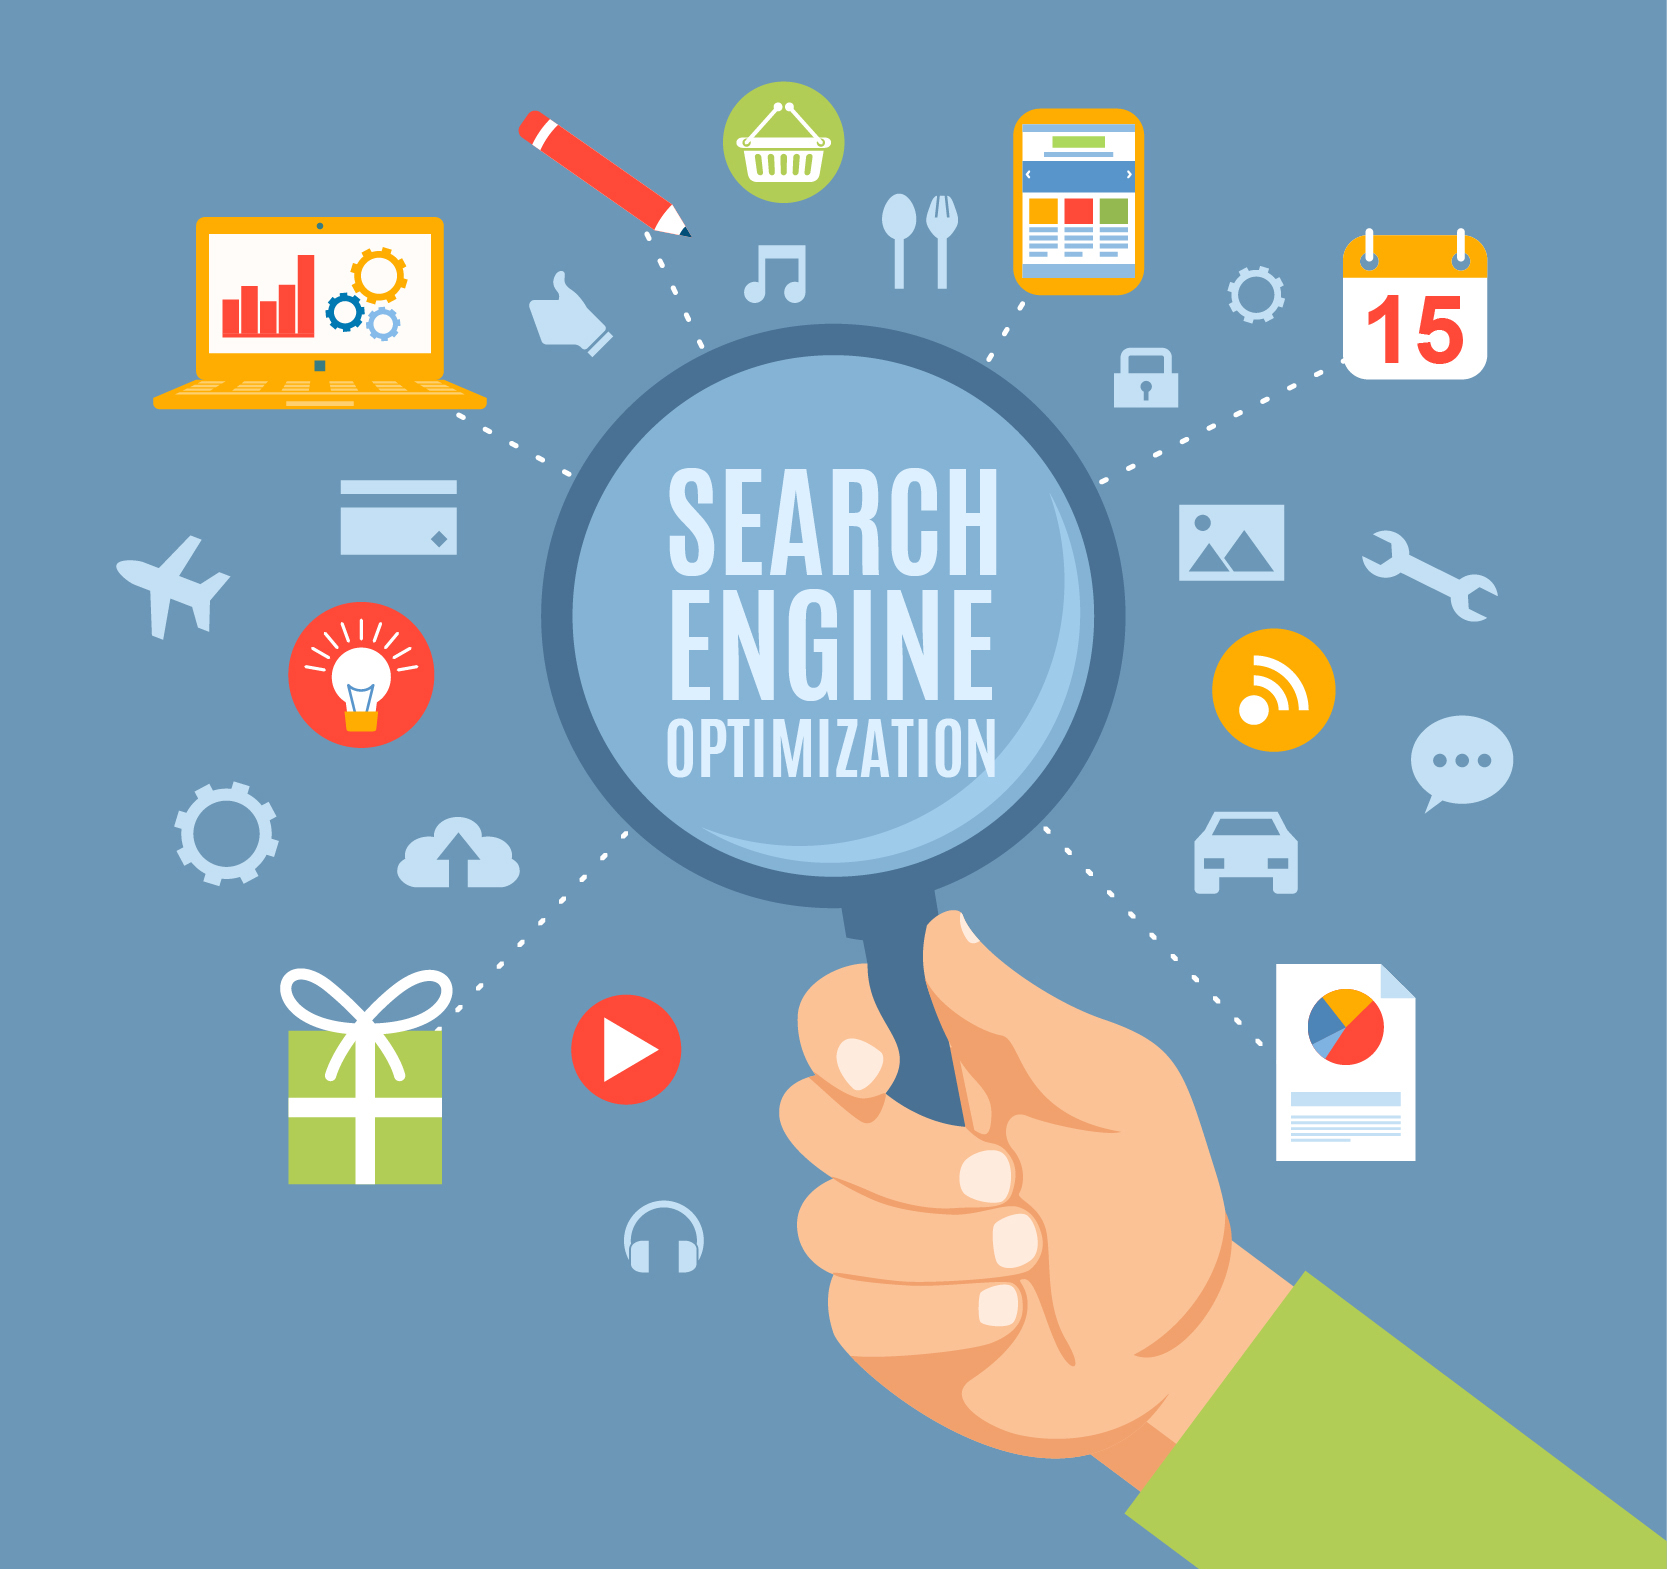 Supercharge your SEO Ranking with Top SEO strategies to help rank Google 1st Page